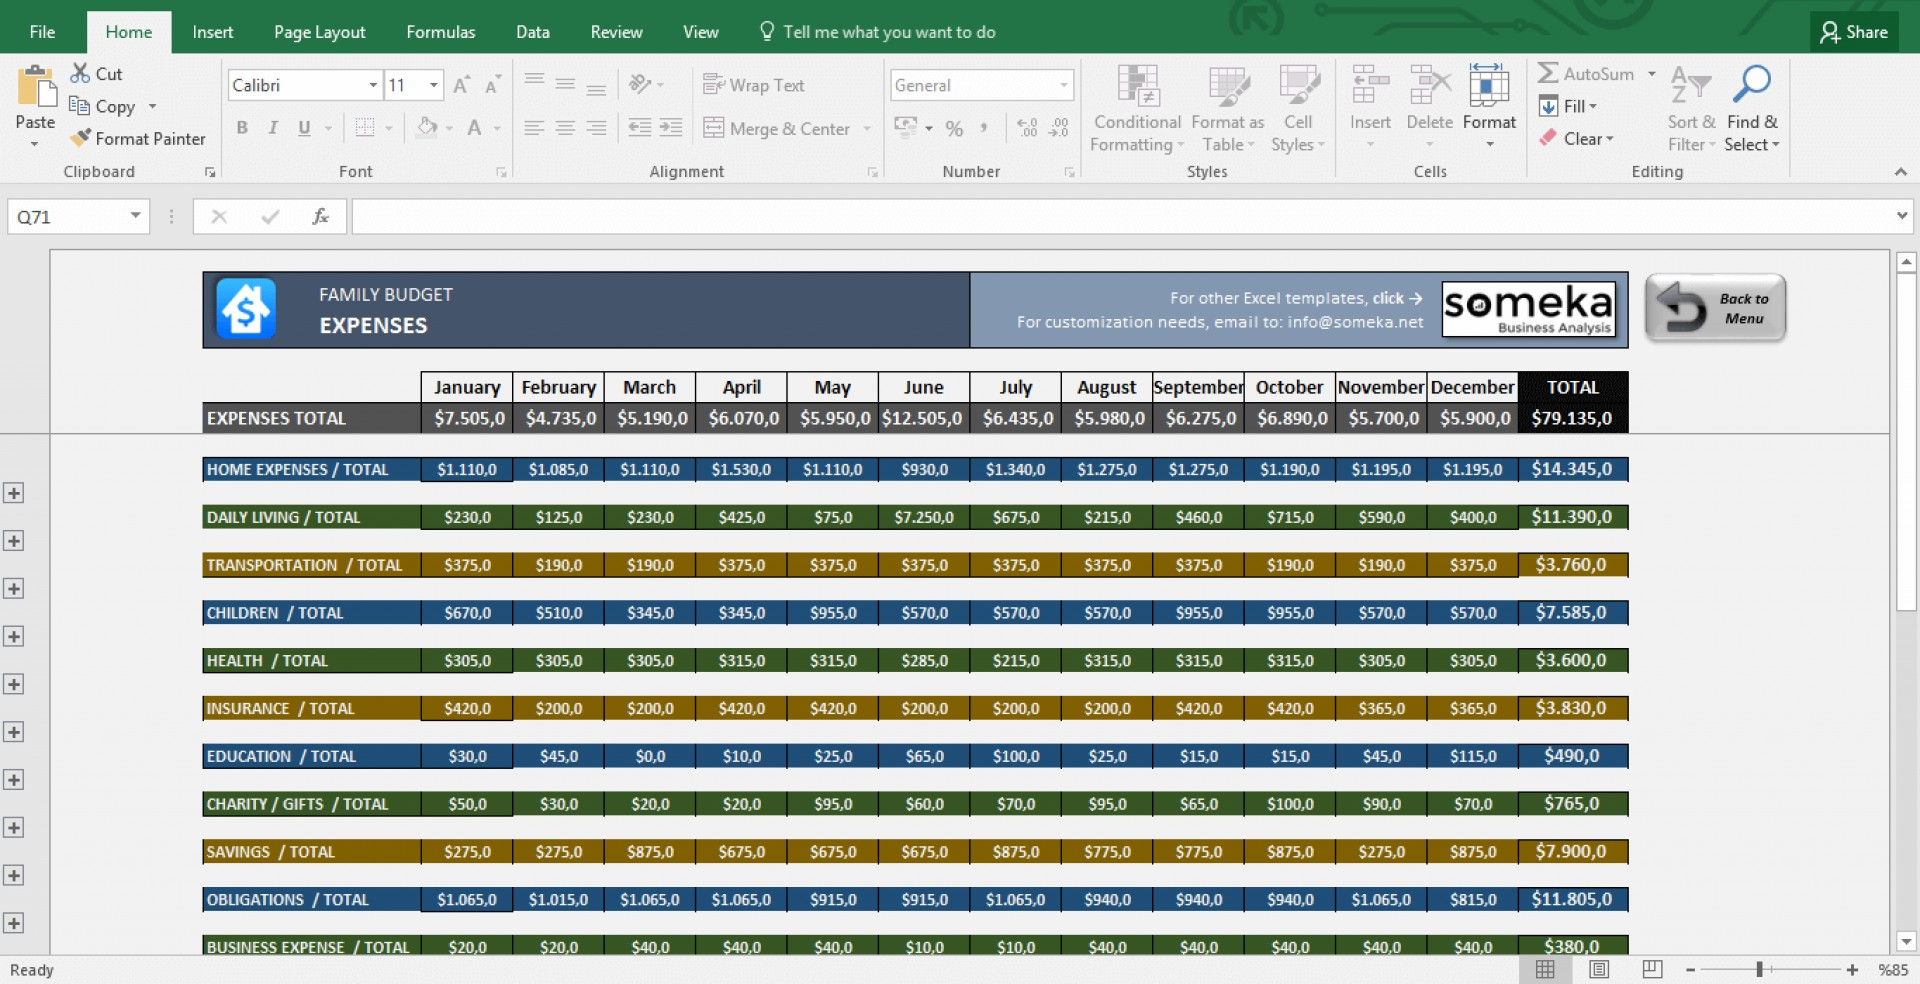 Free Home Accounts Spreadsheet In 022 Template Ideas Free Home Budget Spreadsheet Uk Personal